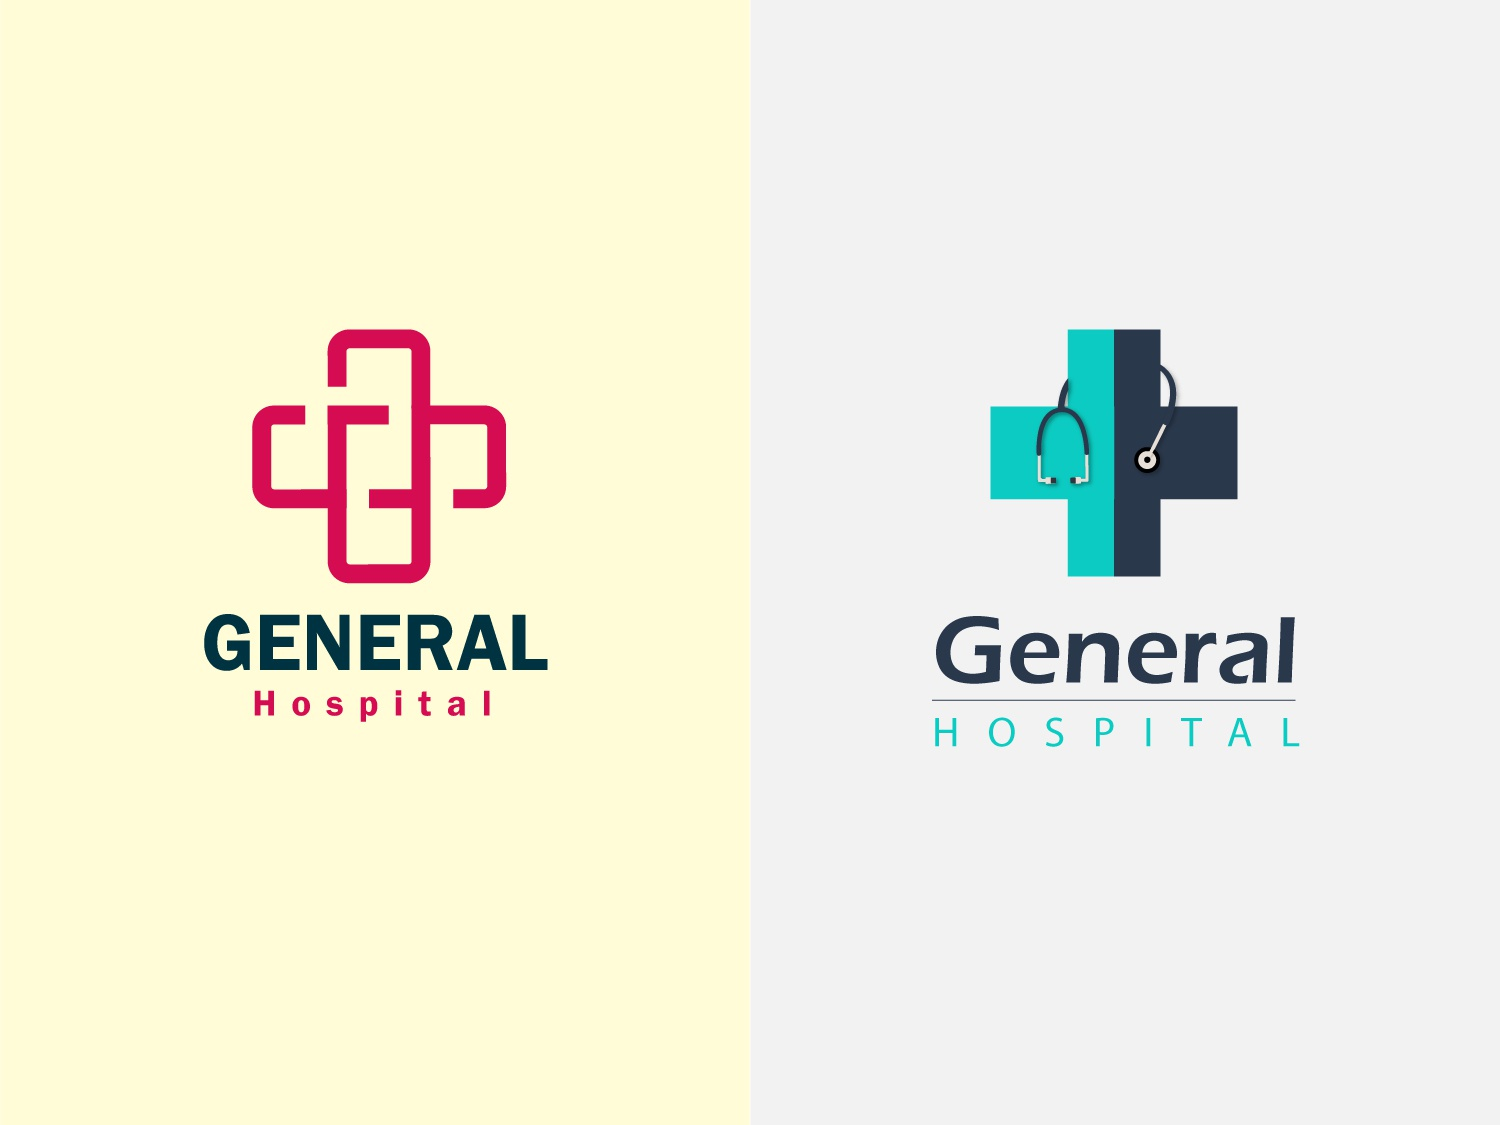 General Hospital Logos nurse doctor cross stethoscope logo vectore art minimalist logo ui ux design clinic general hospitality hospital logo hospital logos logo design branding design creation illustration